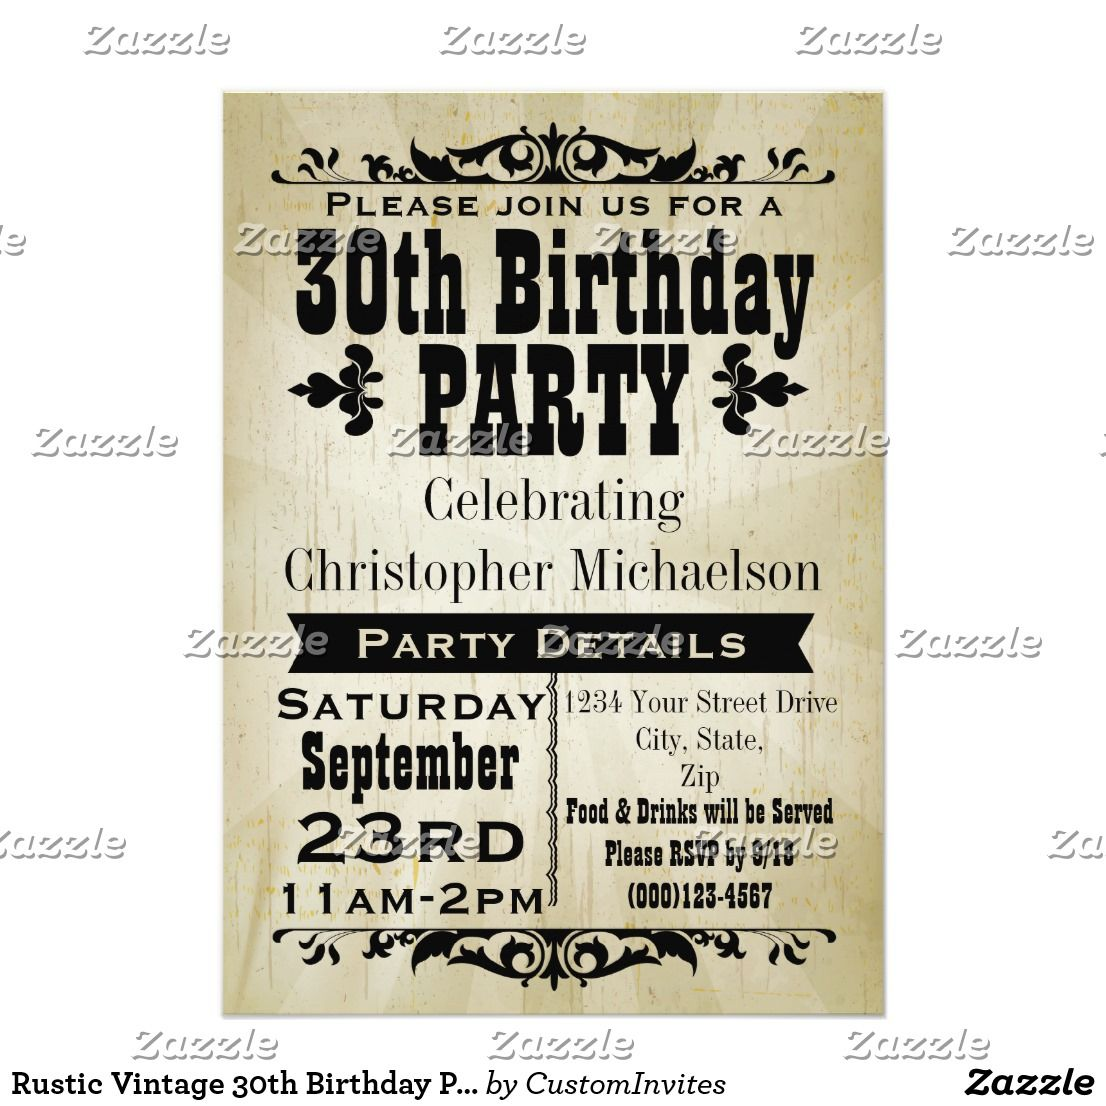 Rustic Vintage 30th Birthday Party Invitation Zazzle Com 30th